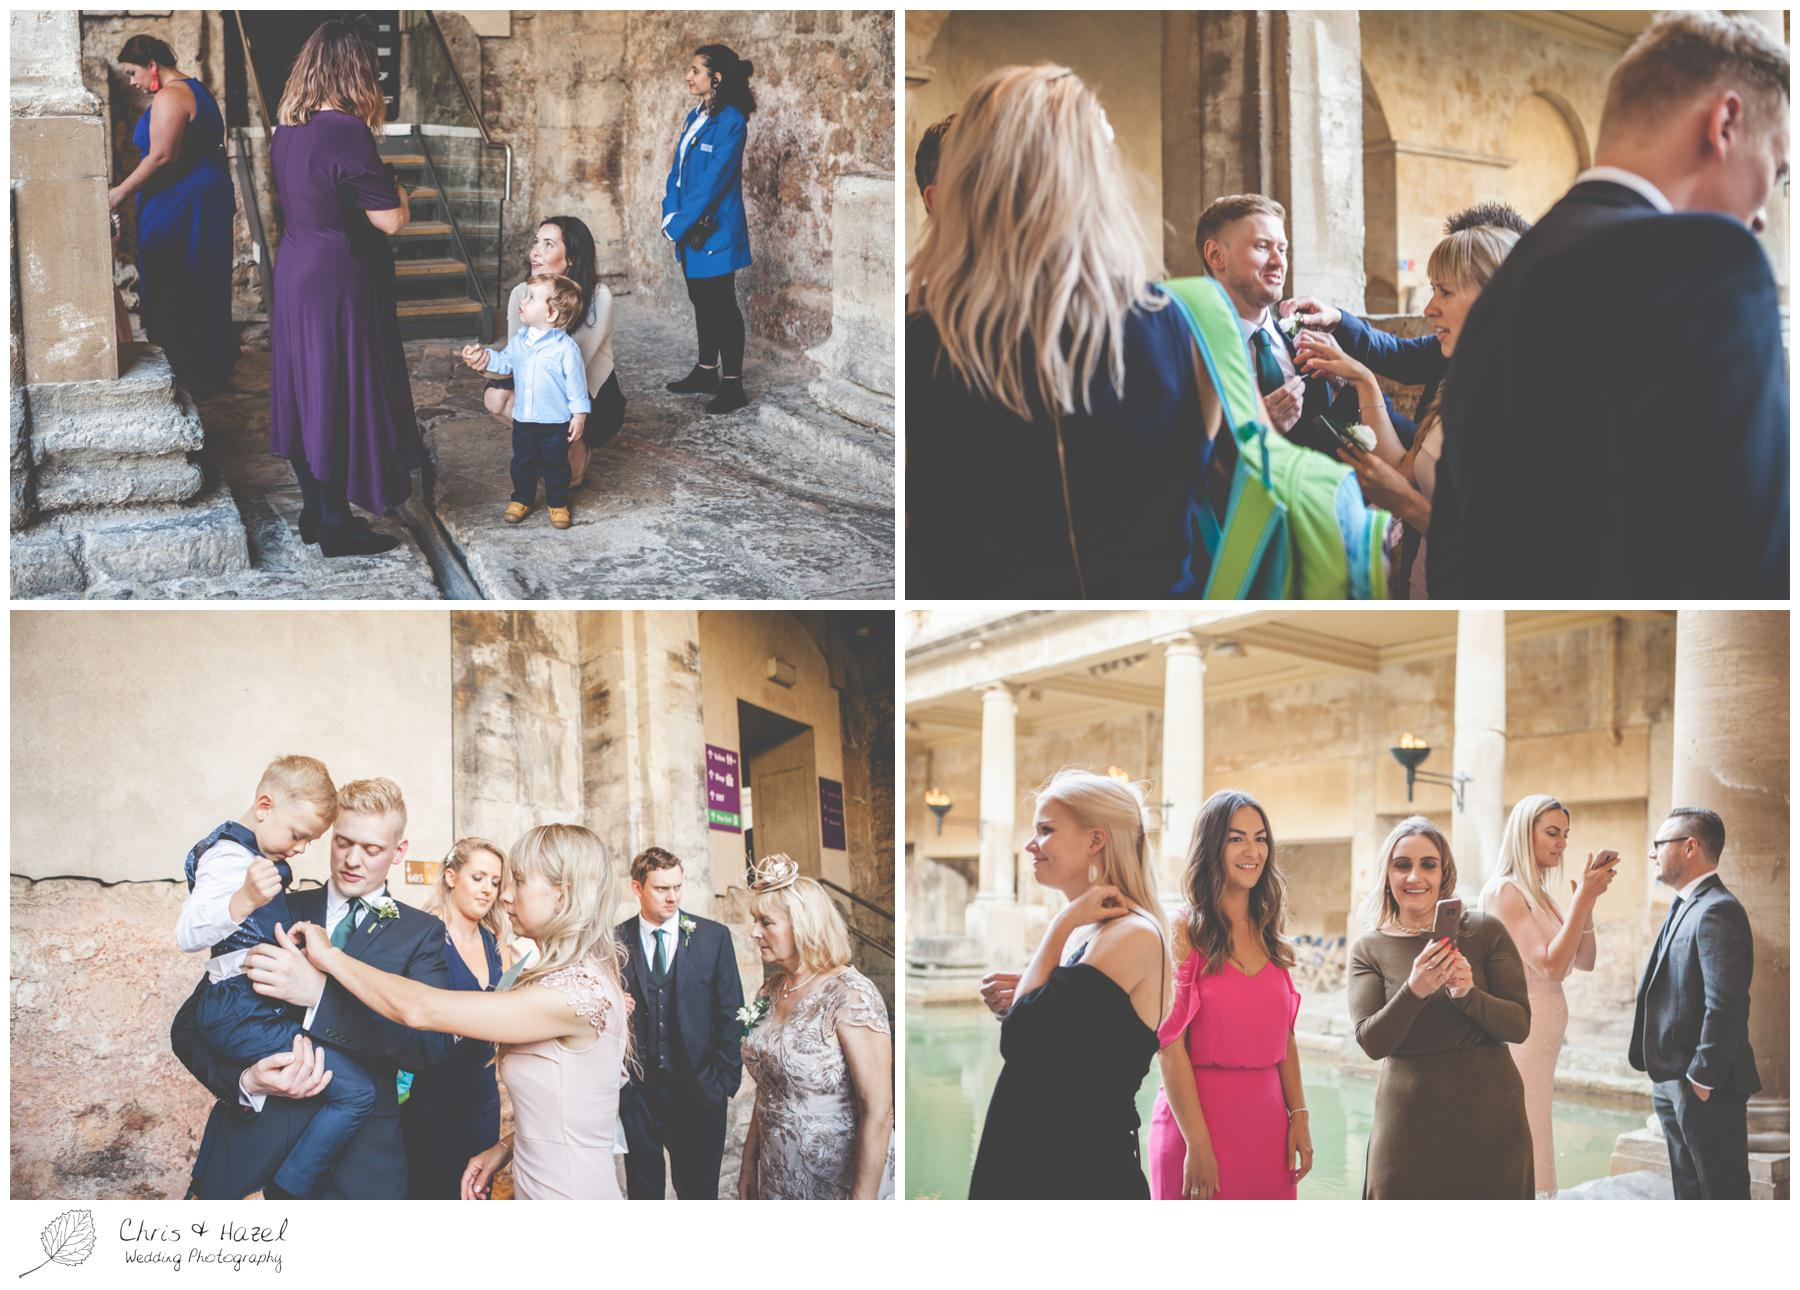 Wedding Guests arriving at Roman Baths Pump Rooms, The Roman Baths Wedding Photography, Roman Baths Wedding Photographer, Wedding in Bath, Bath Wedding Day, documentary wedding photography, Chris and Hazel Wedding Photography Bath, Andy Frost Sian Upson